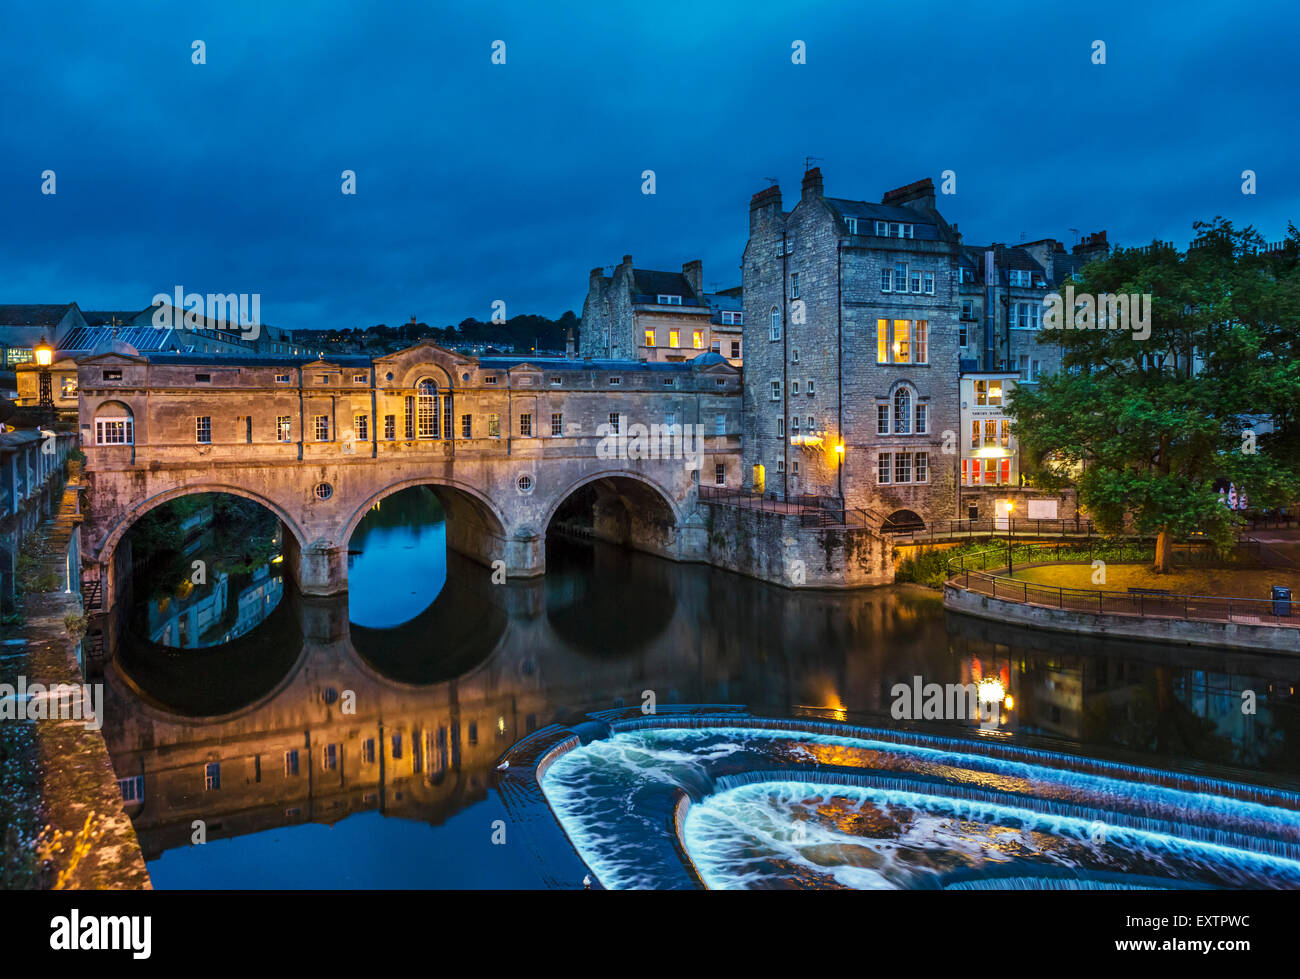 Night shot of the historic 18thC Pulteney Bridge over the River Avon in the historic city centre, Bath, Somerset, Stock Photo